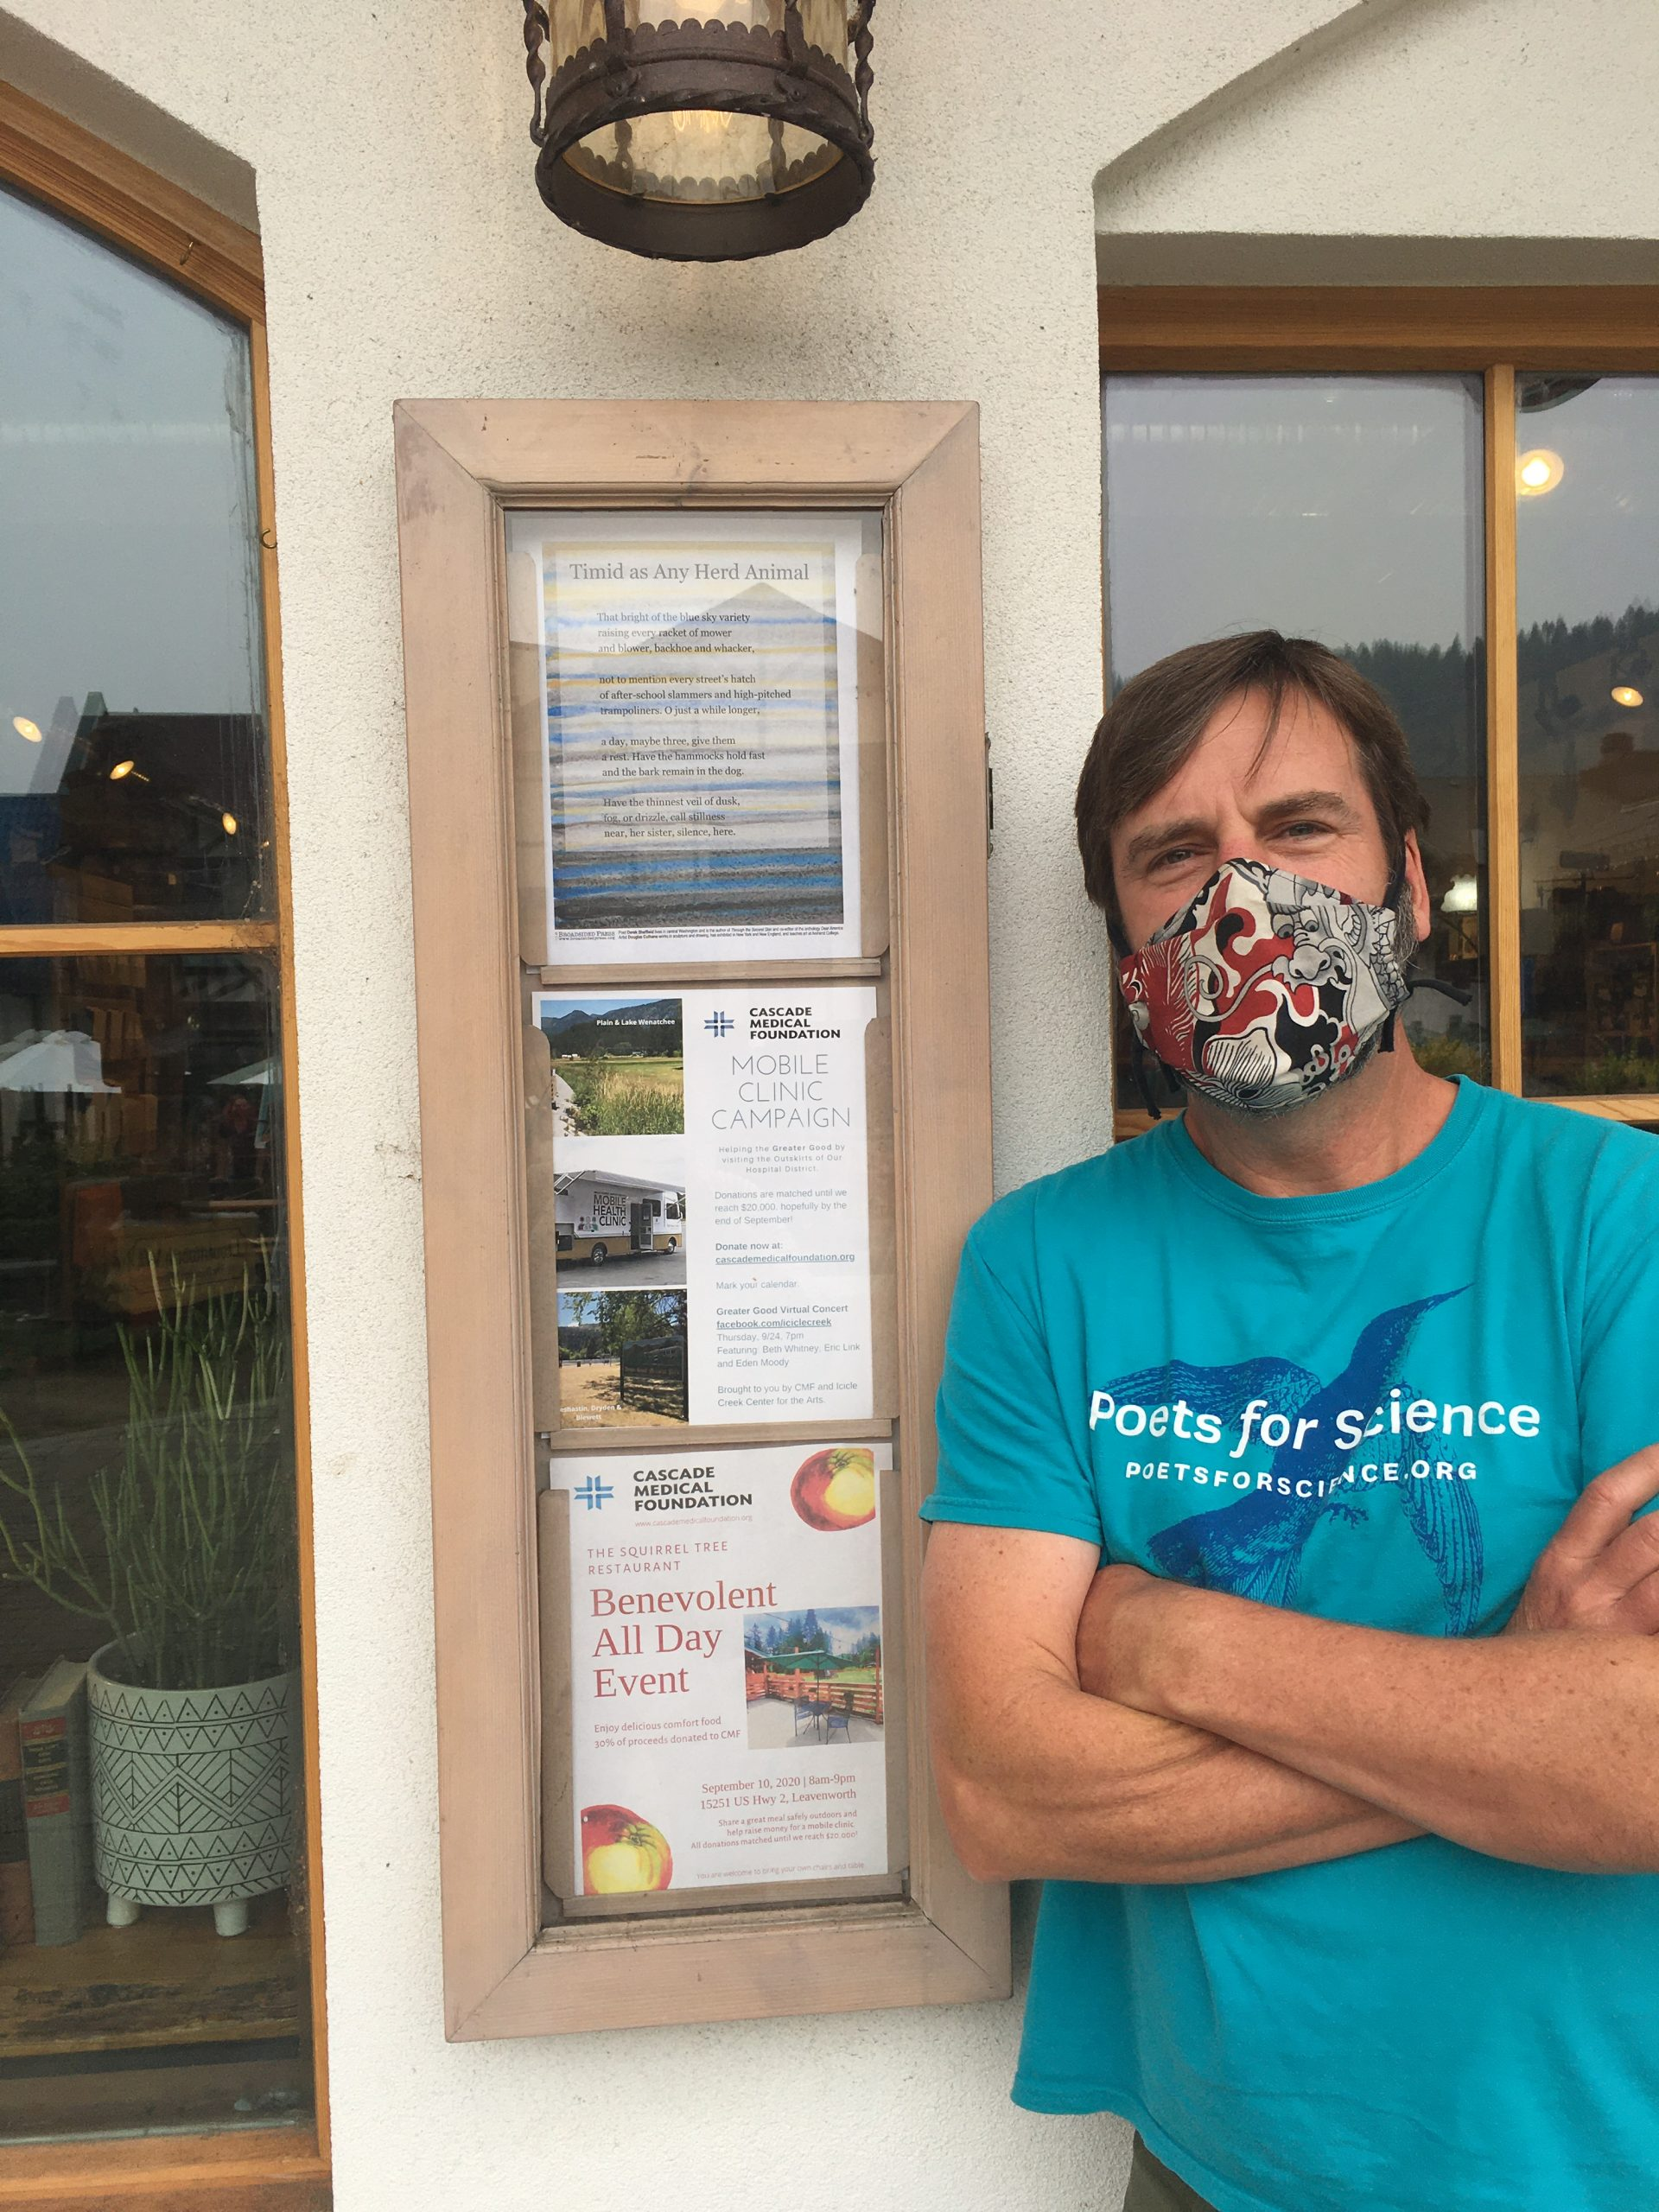 Poet's friend in blue shirt posing next to the Broadside which is in the top space in a wooden frame on a white wall.